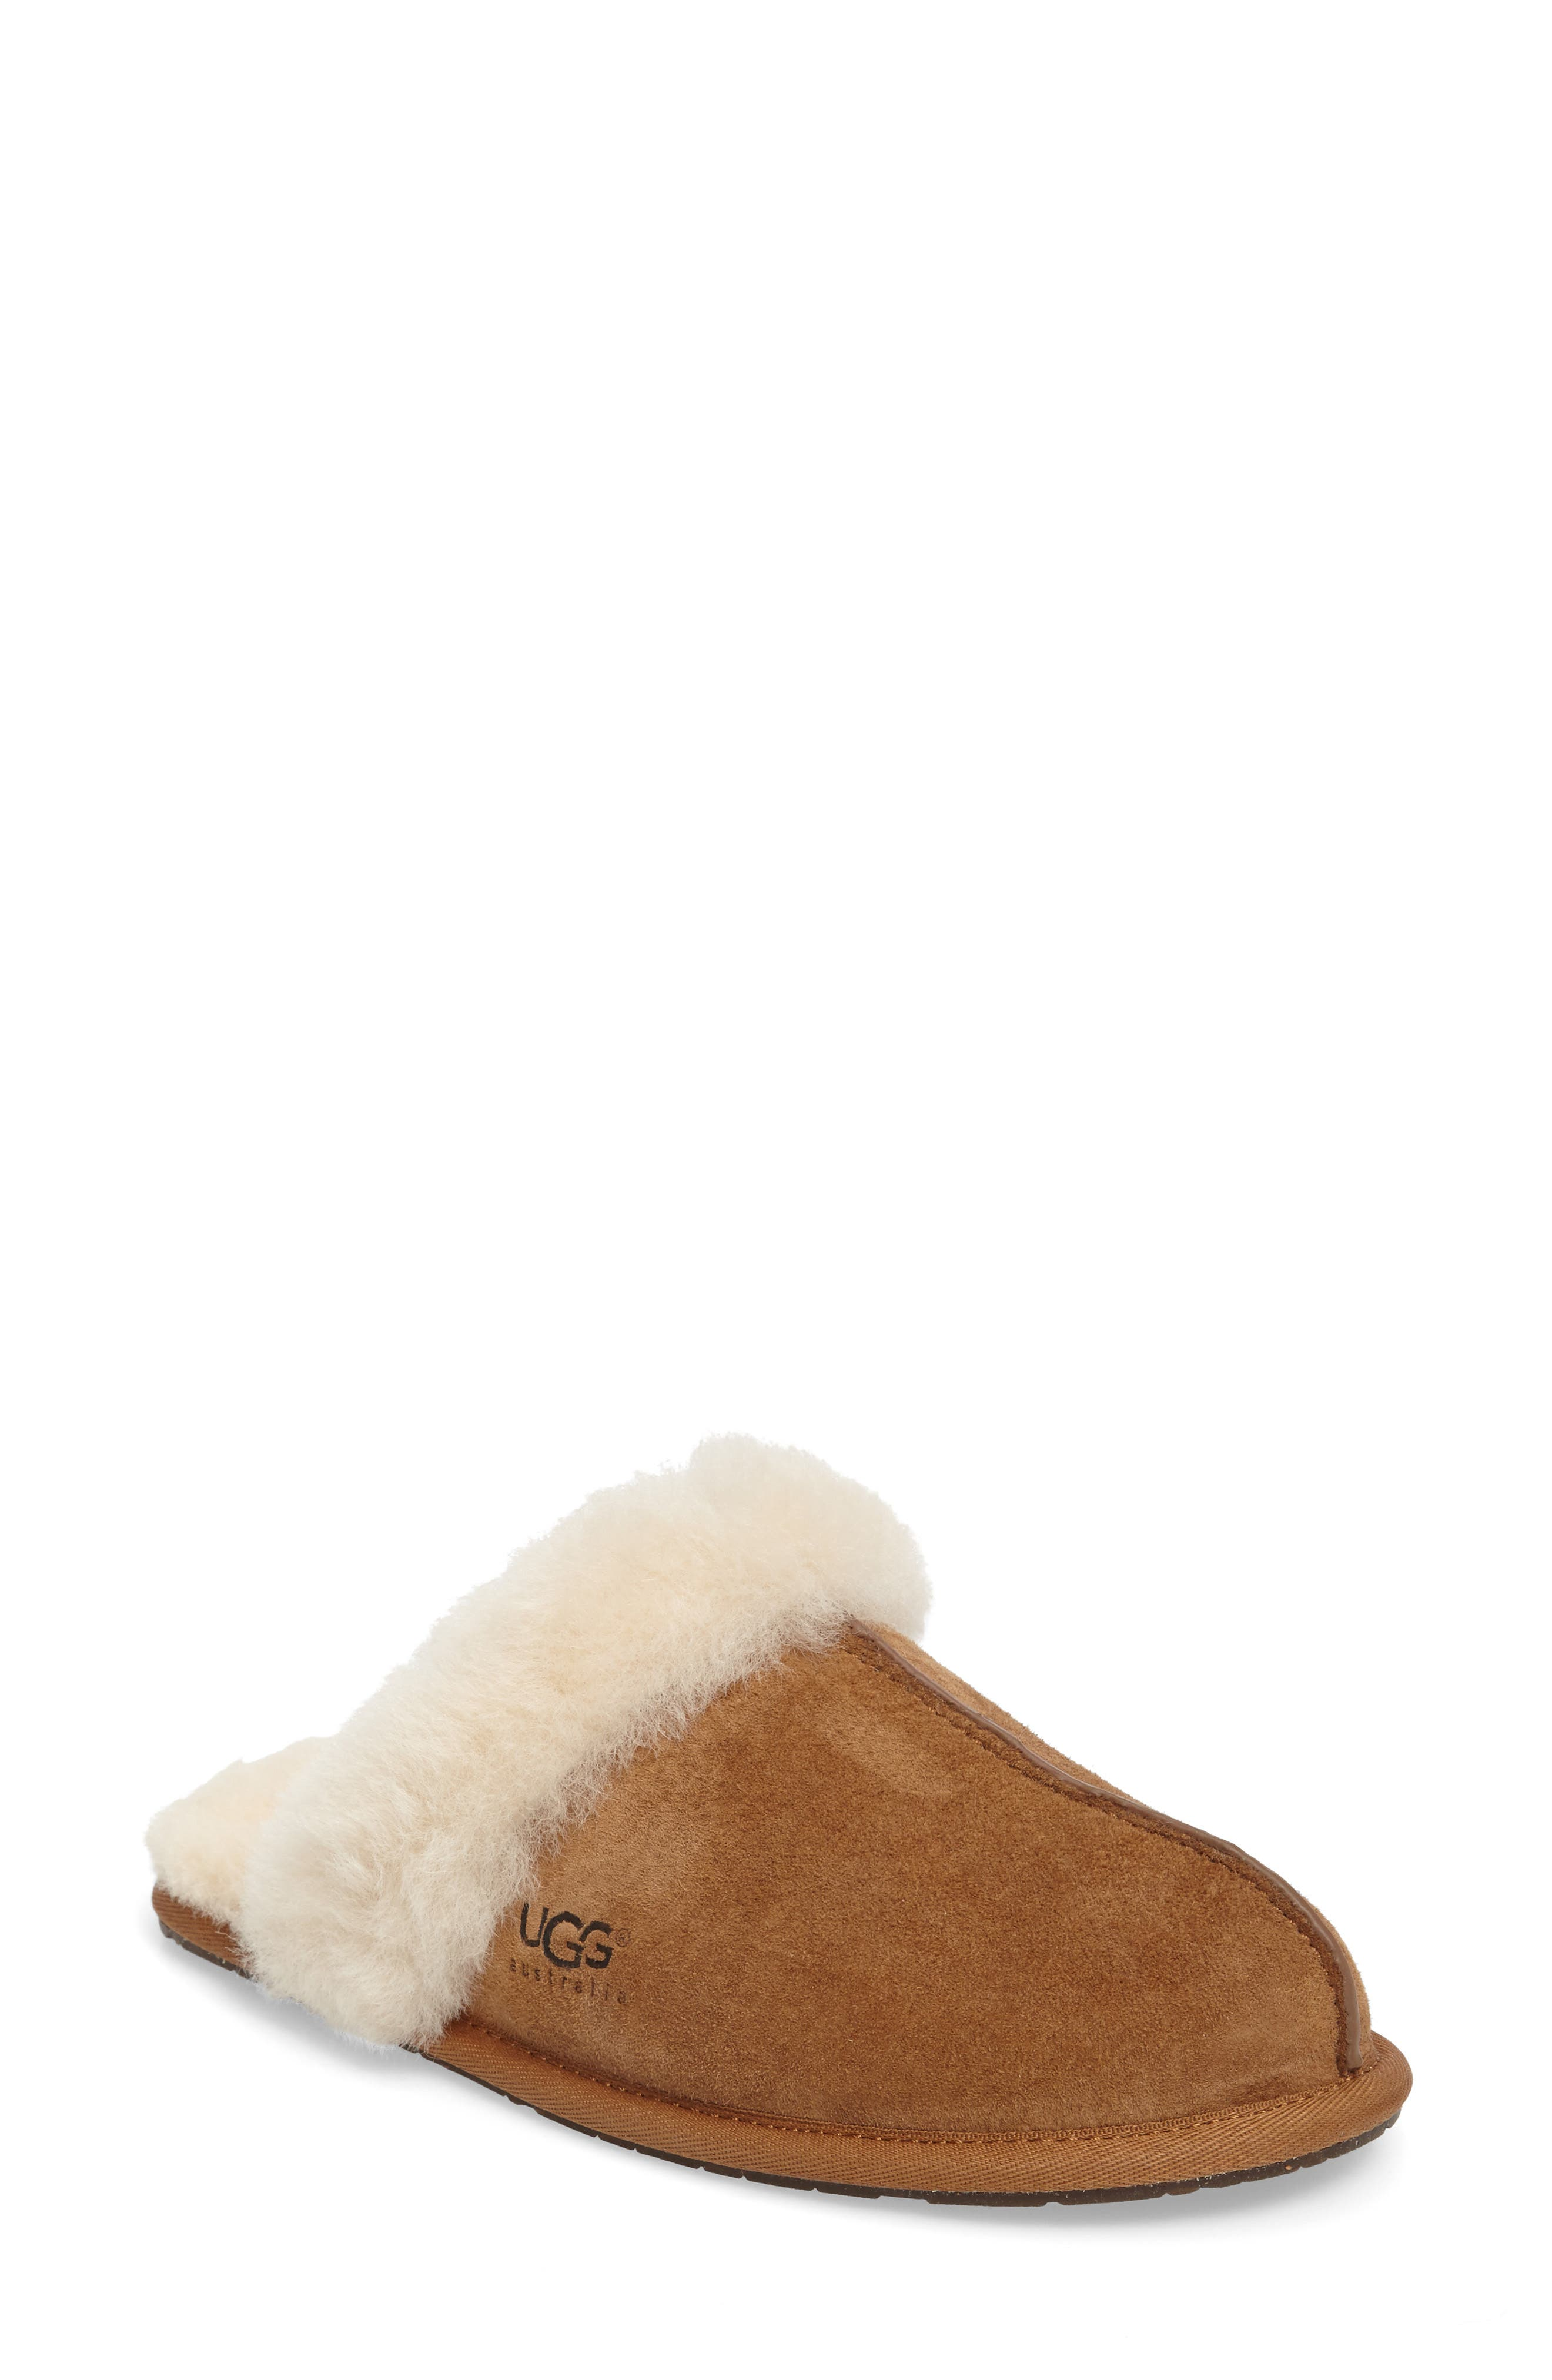 UGG<SUP>®</SUP>, Scuffette II Water Resistant Slipper, Main thumbnail 1, color, 219